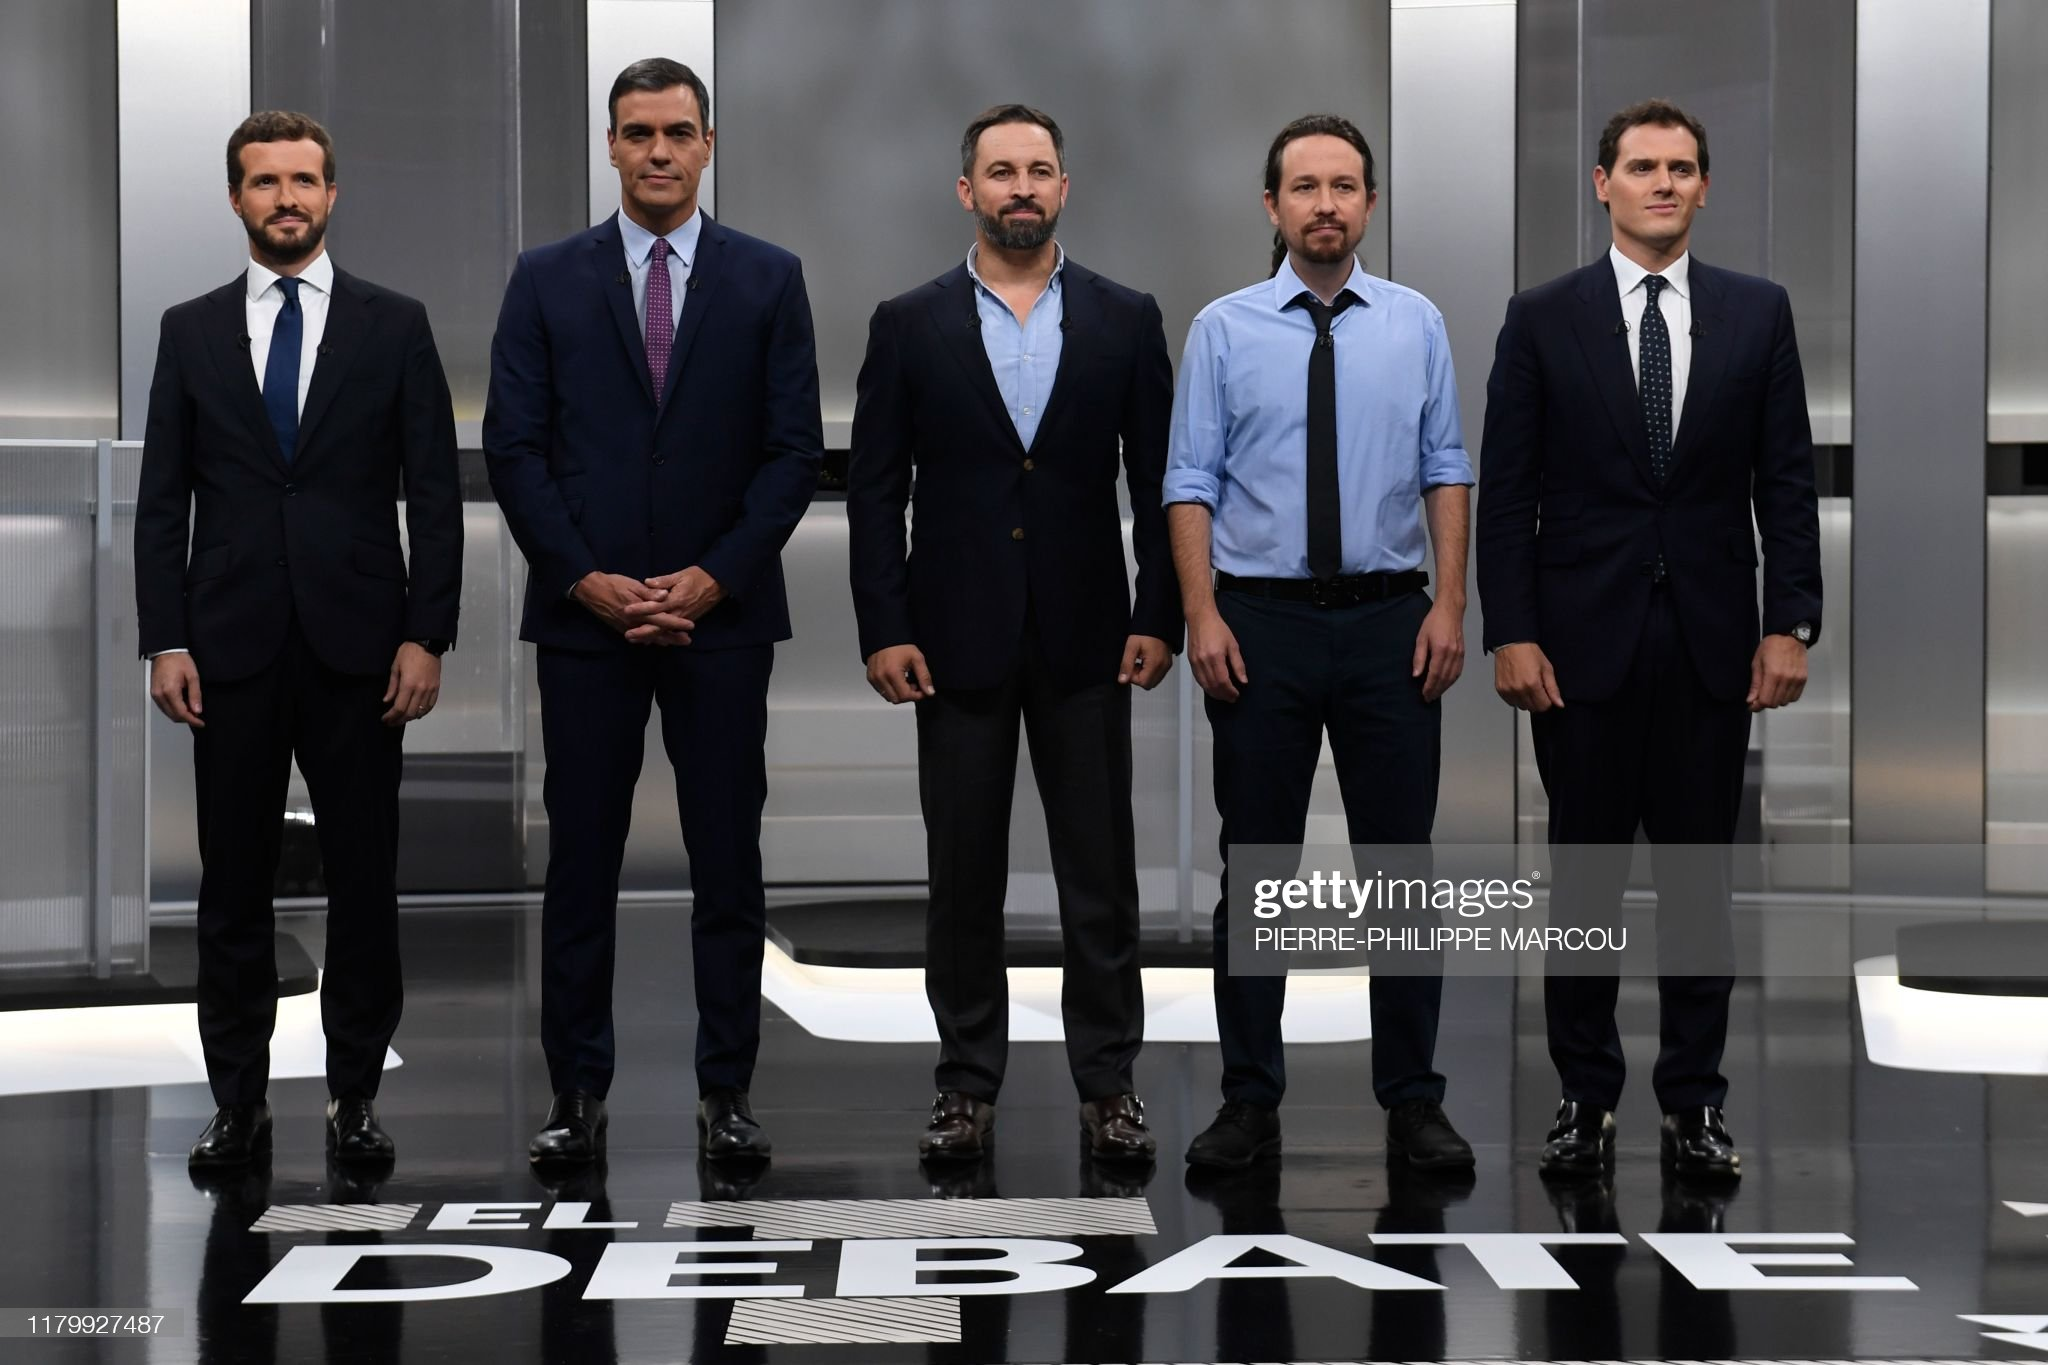 ¿Cuánto mide Albert Rivera? - Estatura real: 1,80 - Página 9 The-five-main-candidates-for-spains-prime-minister-conservative-picture-id1179927487?s=2048x2048